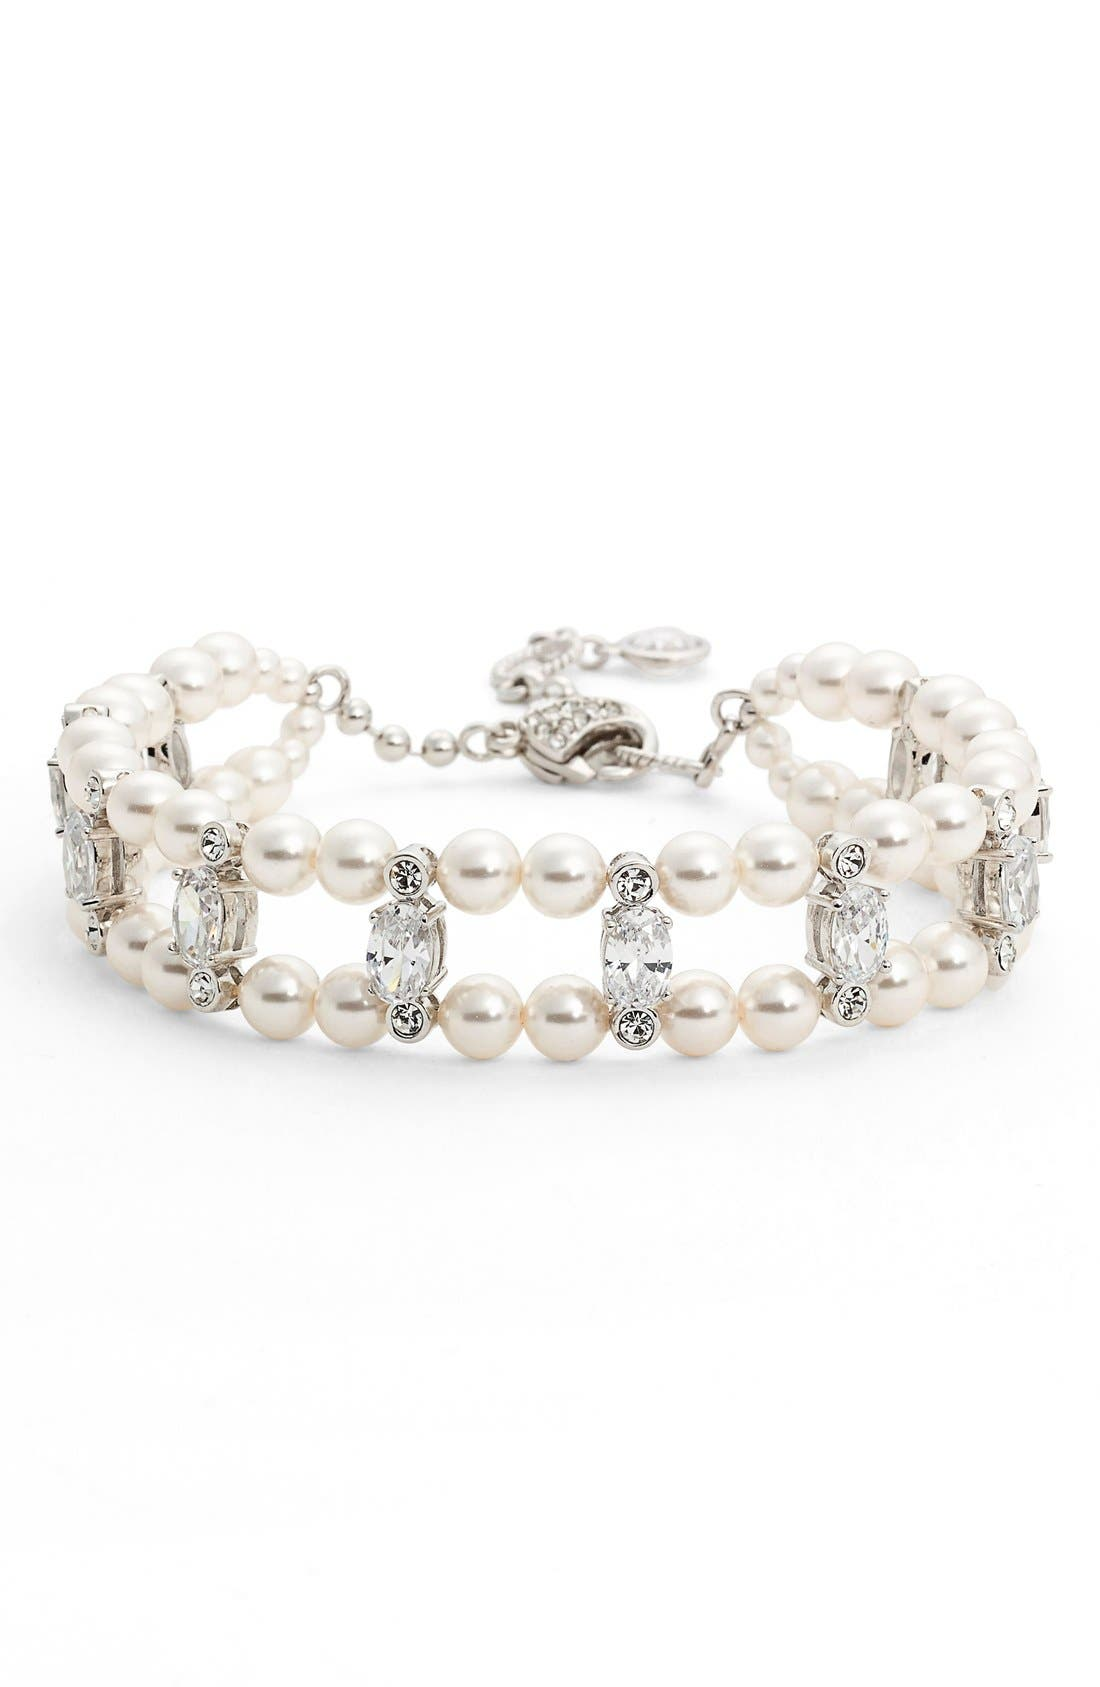 Double Row Imitation Pearl & Crystal Bracelet,                         Main,                         color, Ivory